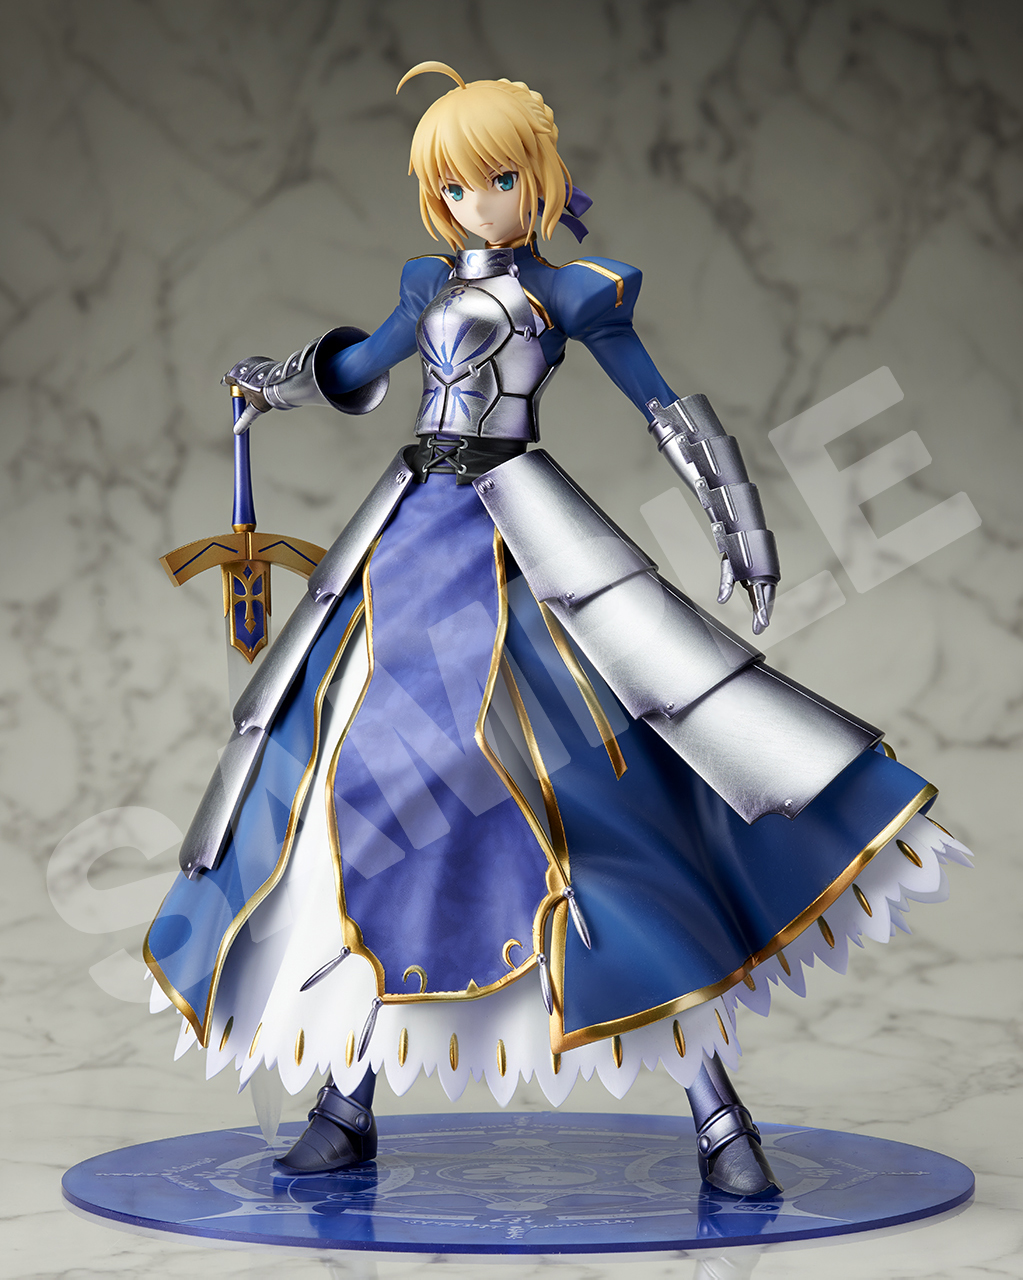 Saber Standard Edition Fate/Grand Order Figure